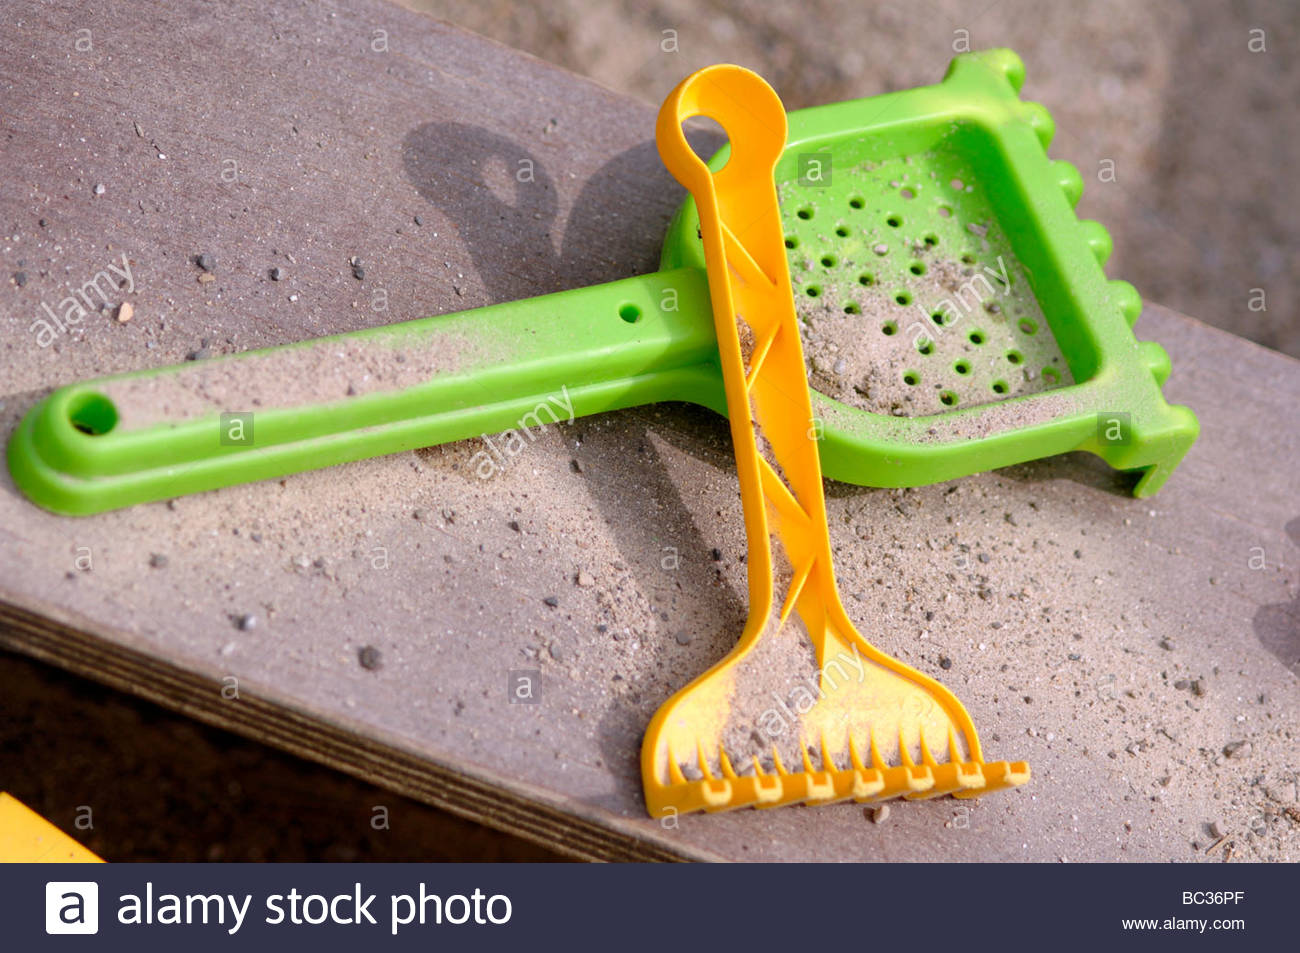 Sandbox with playthings - Stock Image